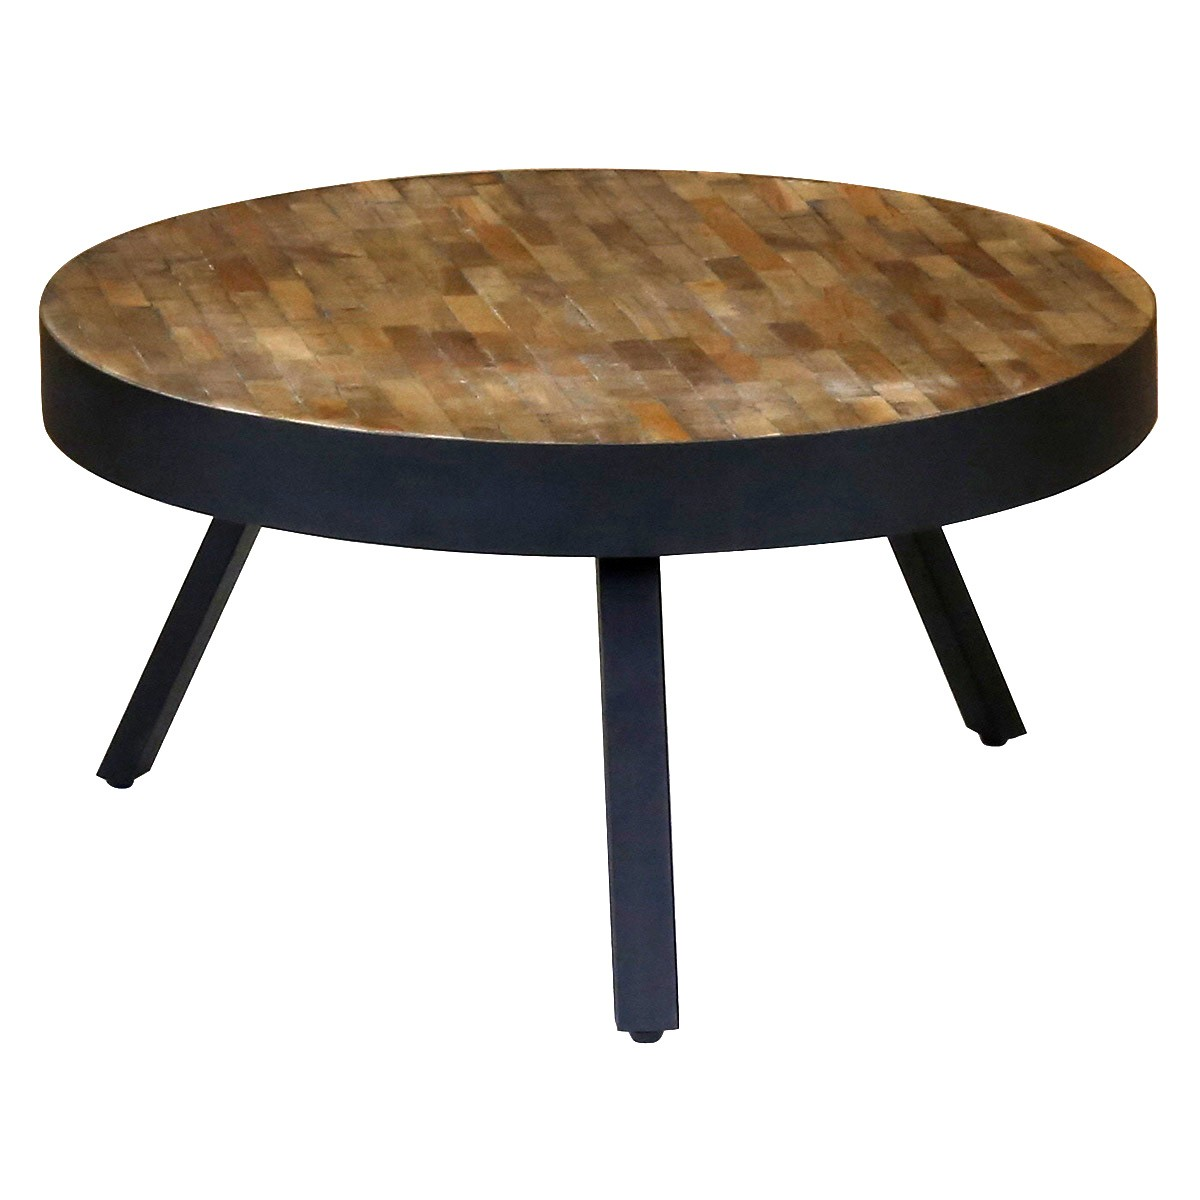 Table basse ronde teck et m tal style industriel et loft 76 cm woody zago - Table basse ronde salon ...